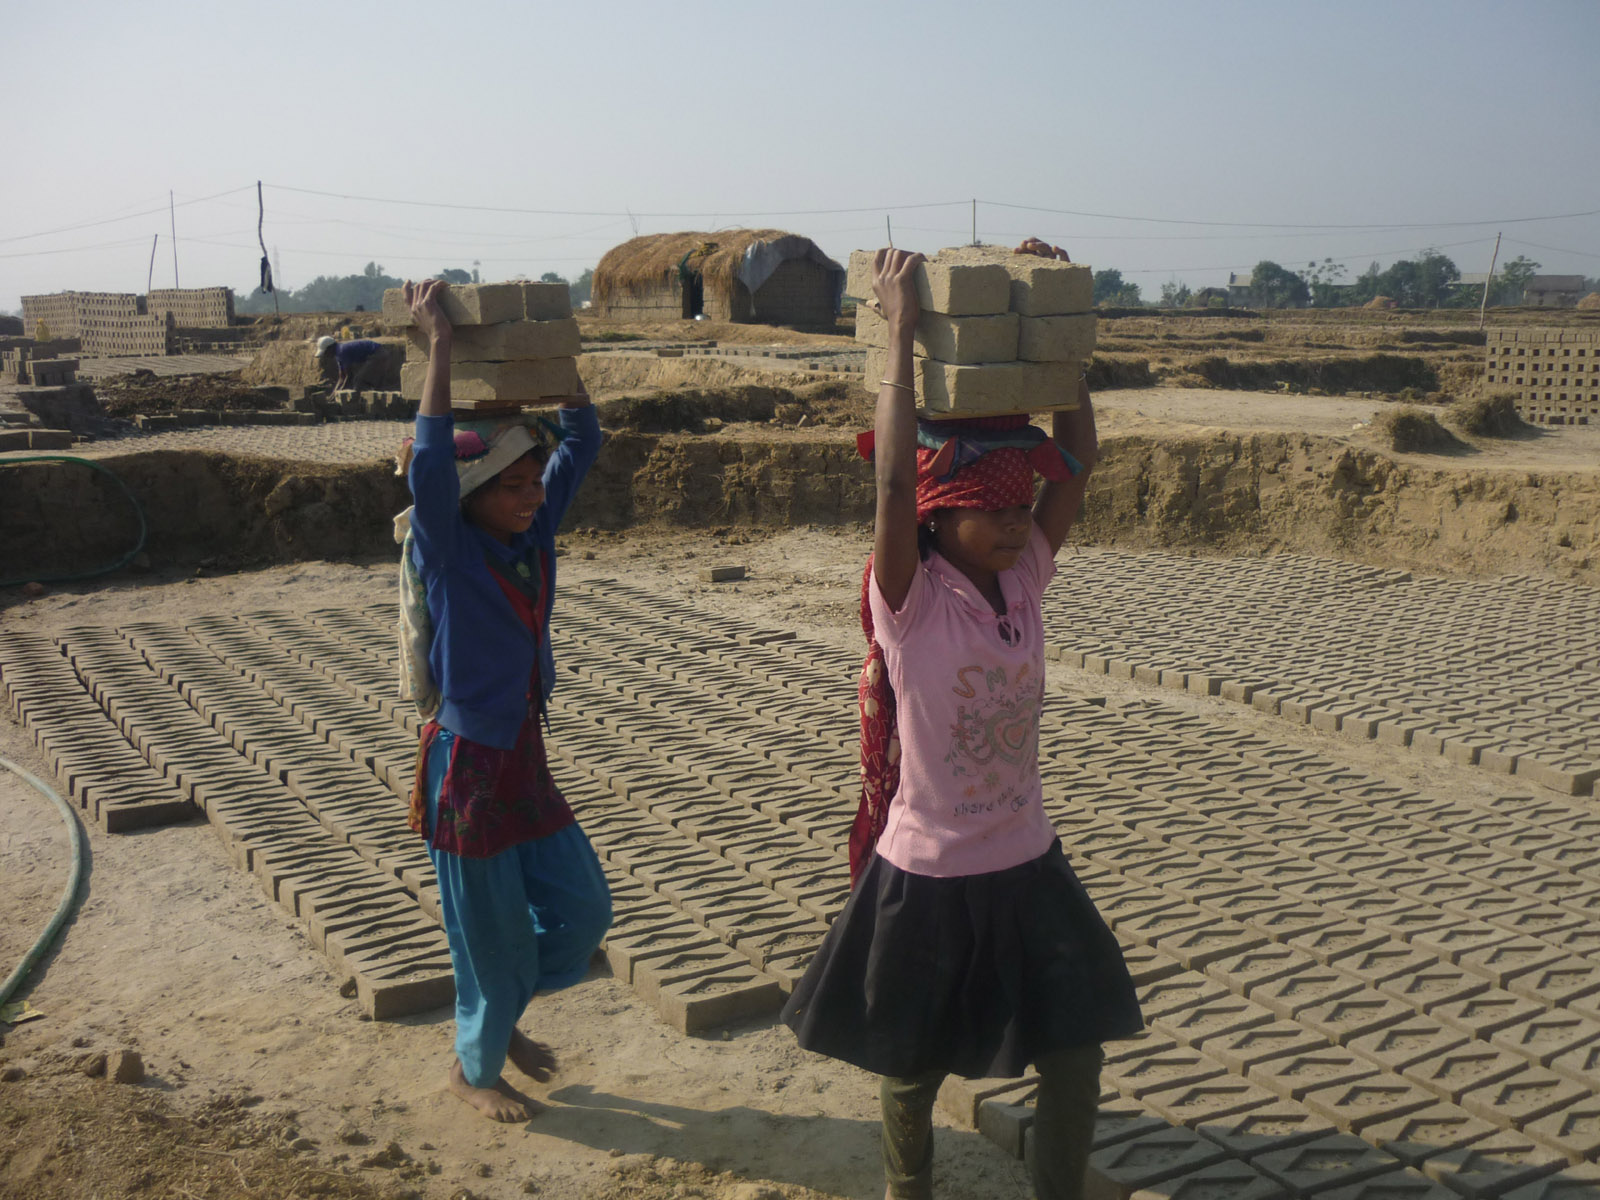 India Sends Children Back to Work